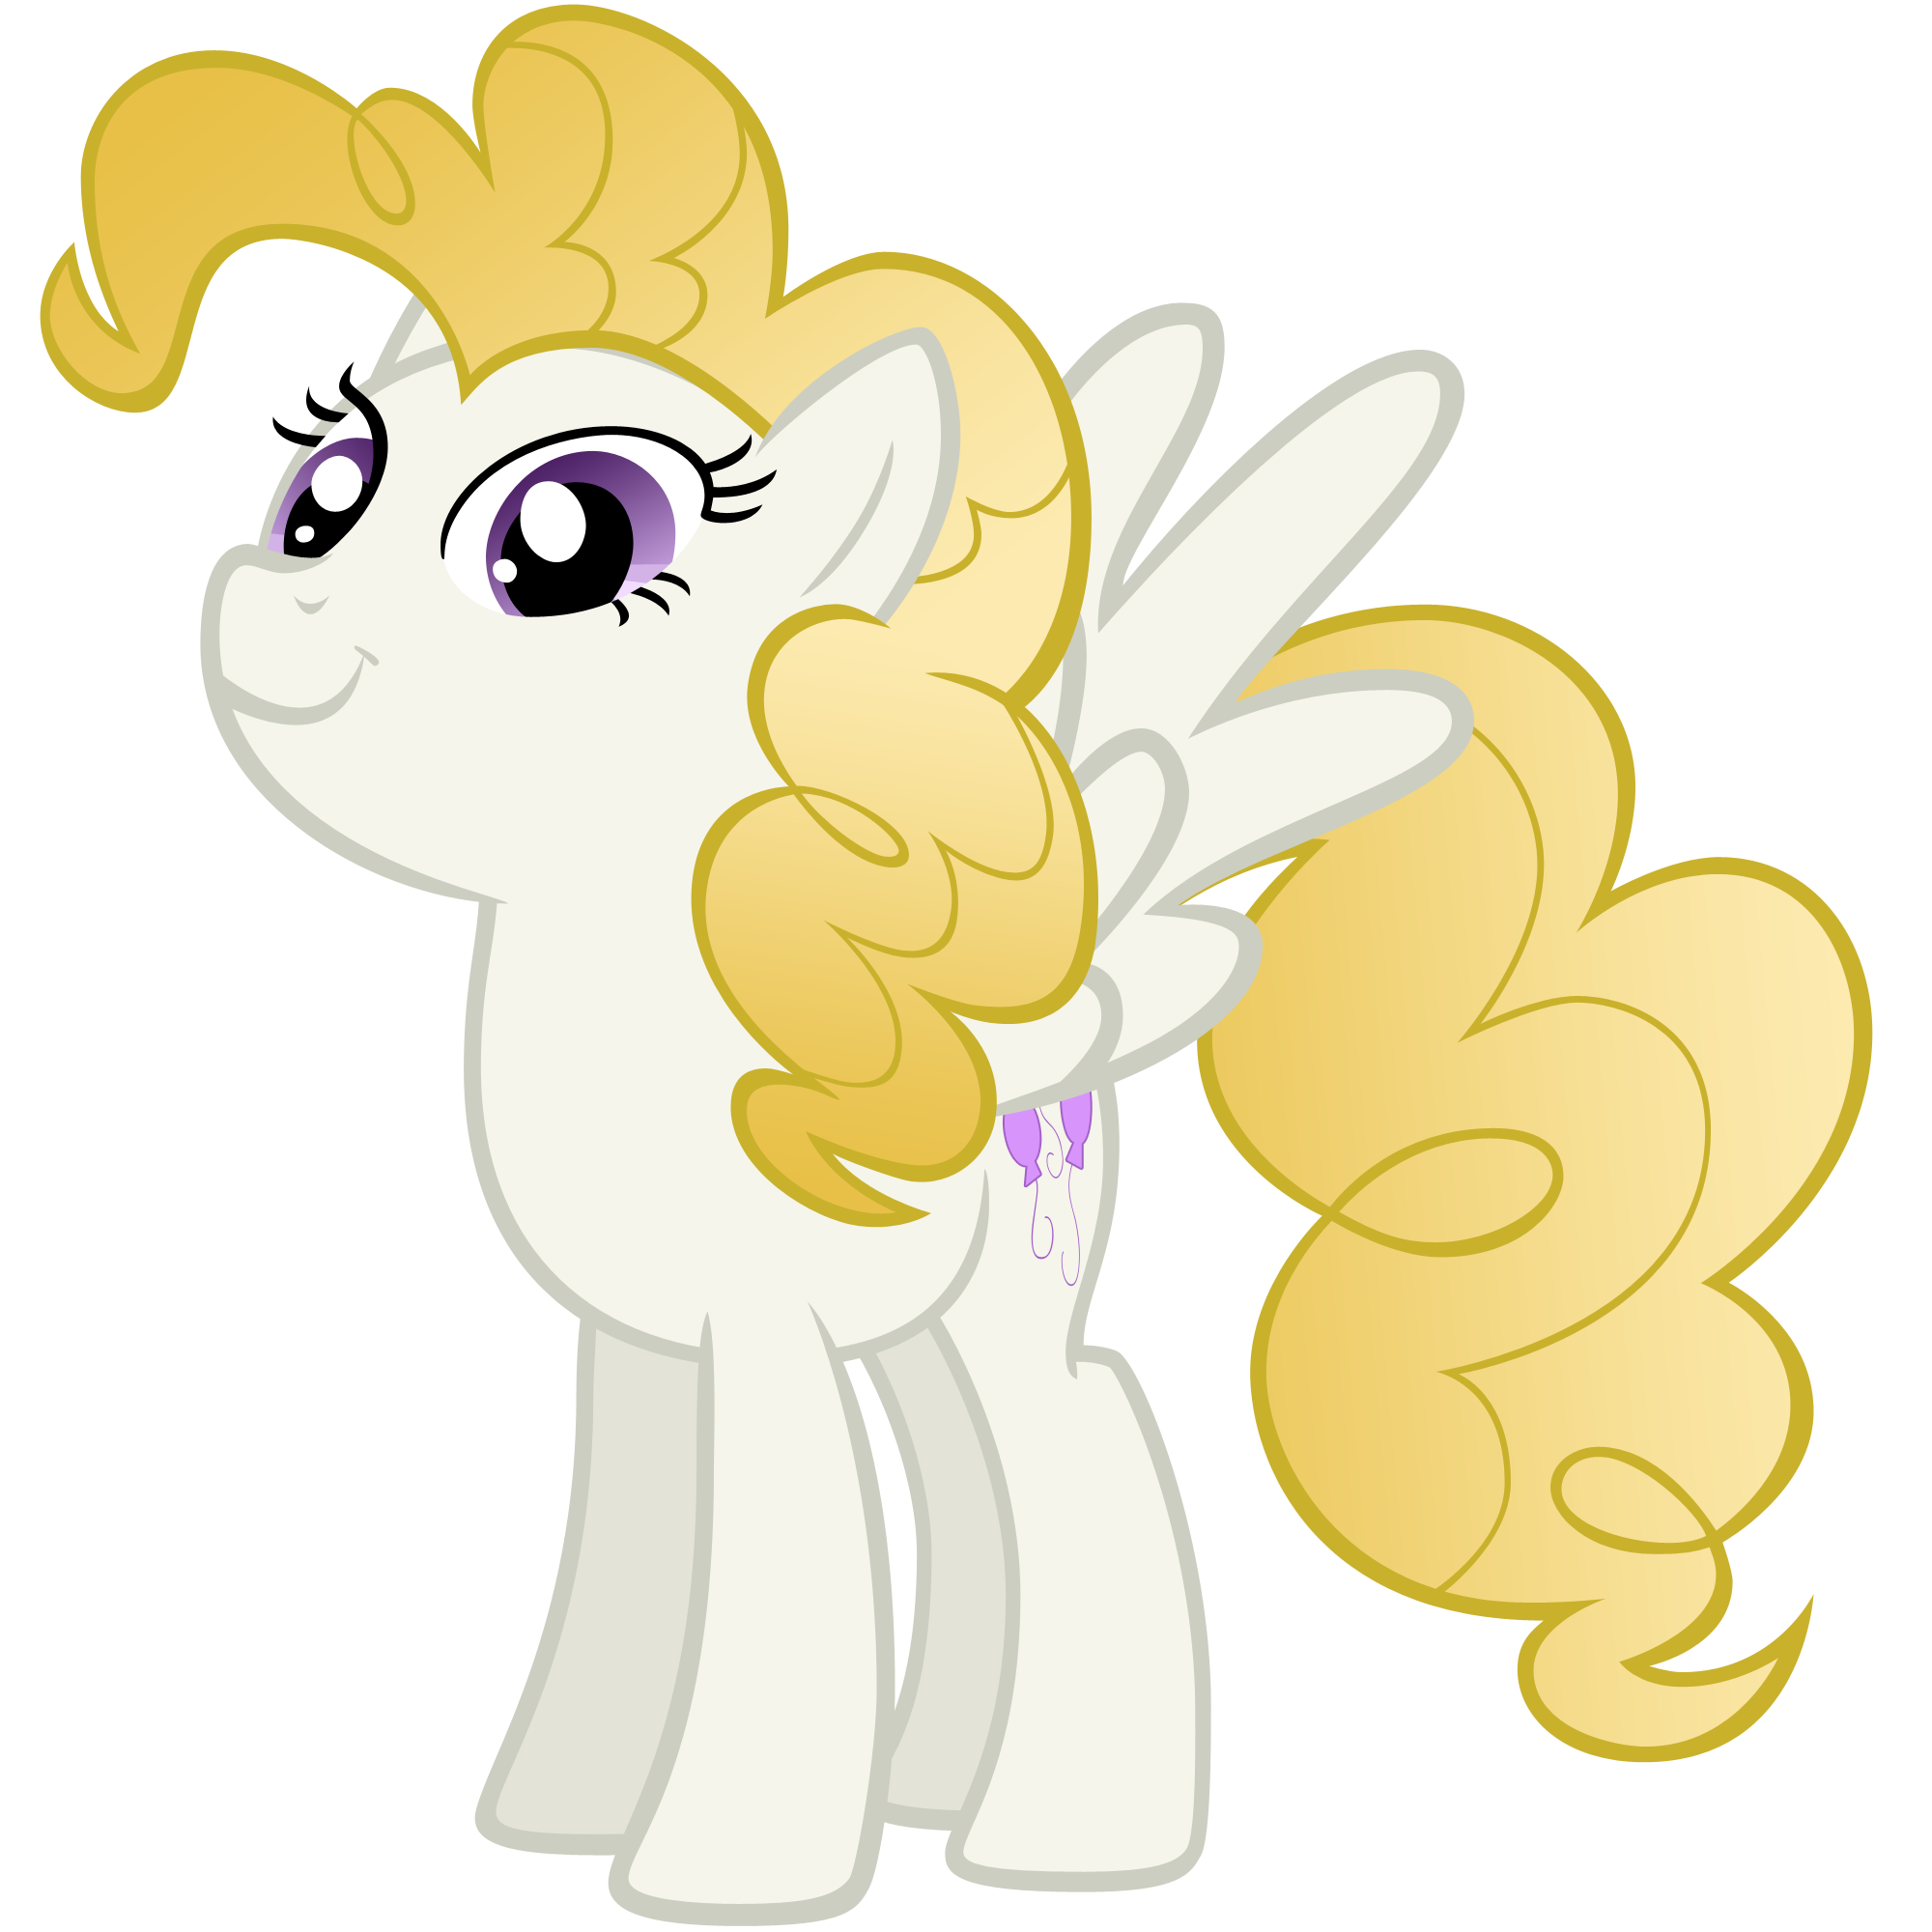 Image pinkie pie and fluttershy flying png my little pony fan - Image Pinkie Pie And Fluttershy Flying Png My Little Pony Fan 49